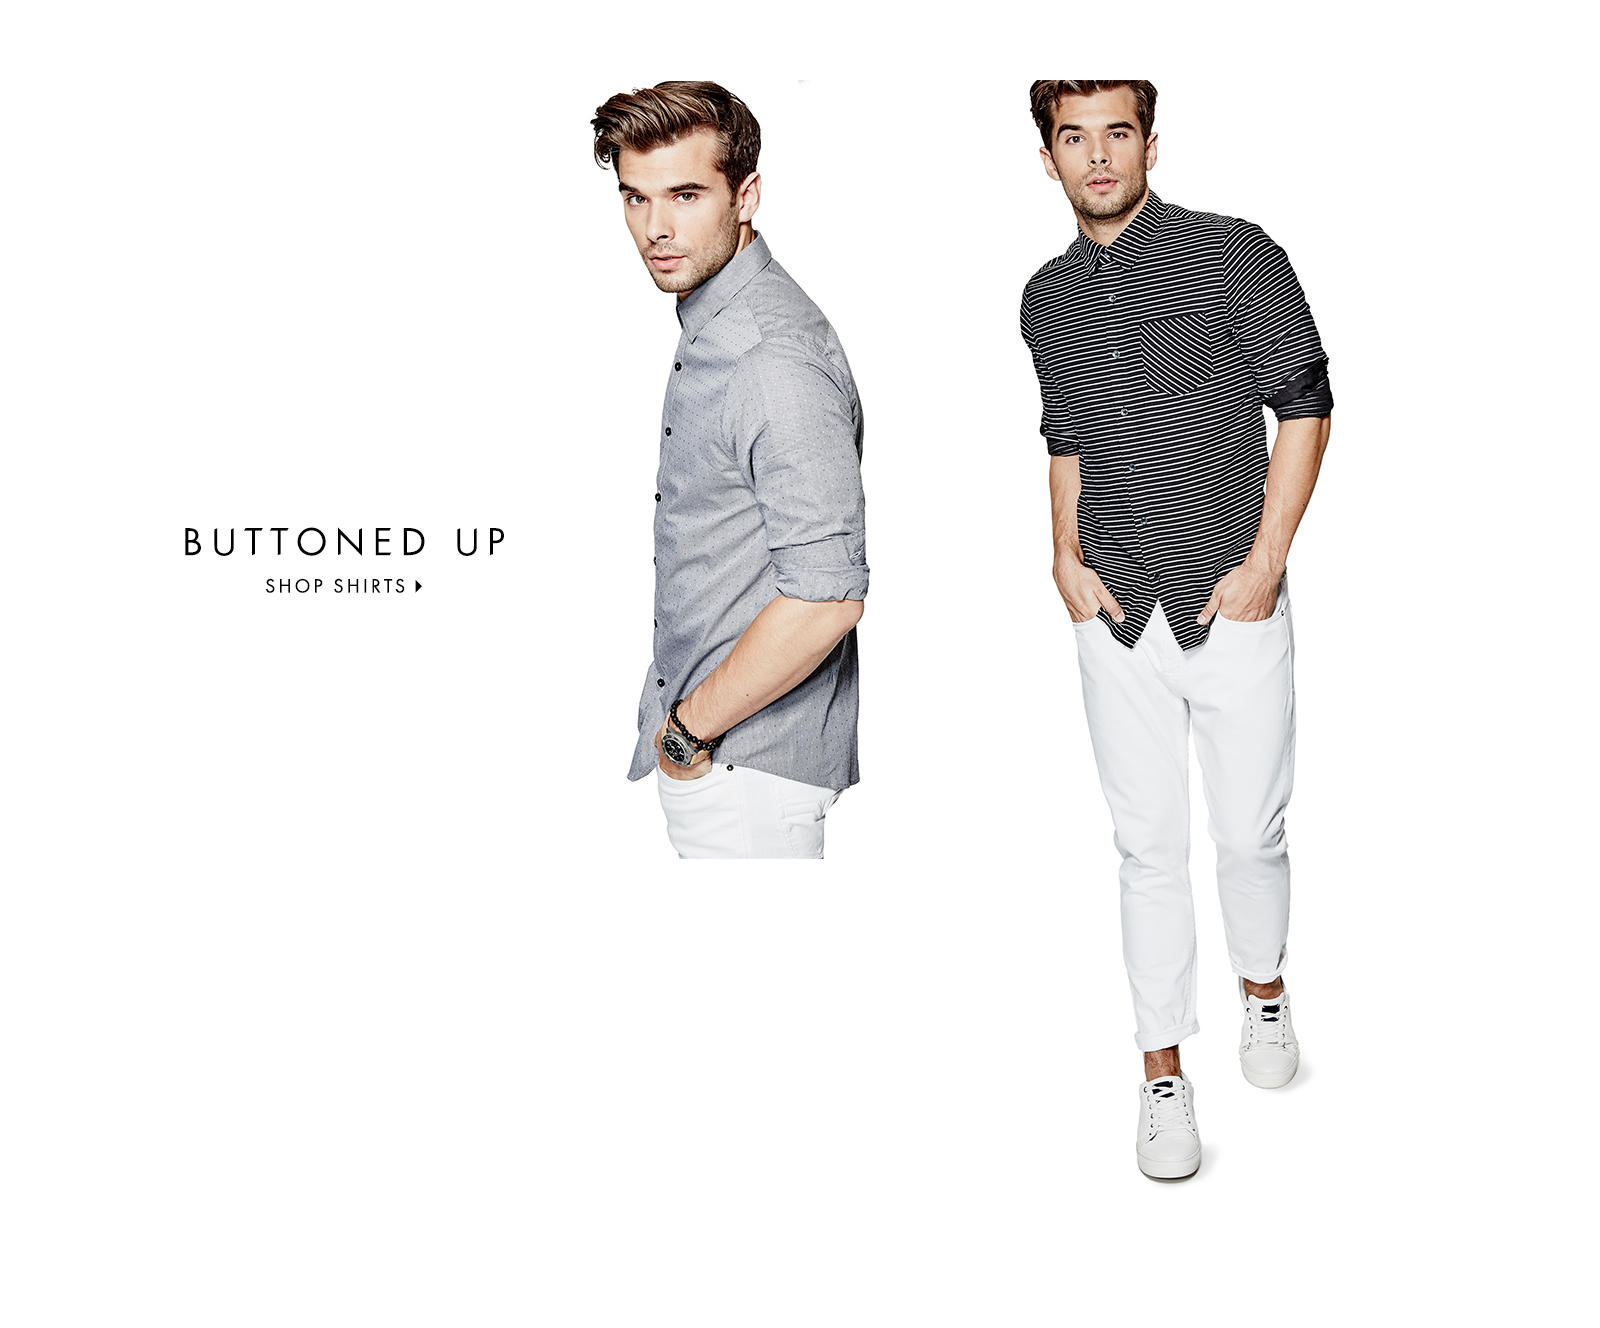 BUTTONED UP